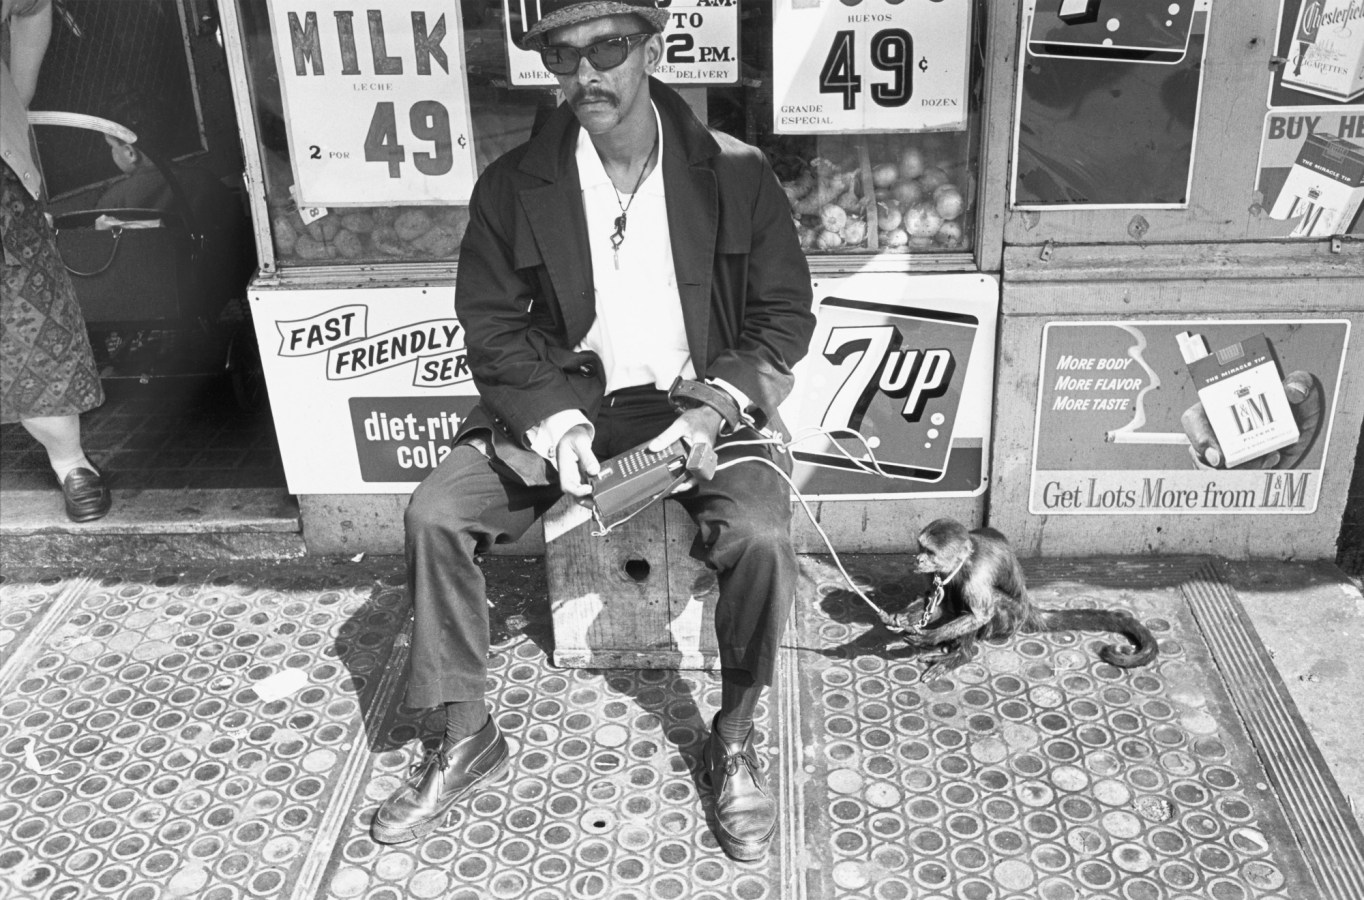 Black-and-white photograph of a man and a monkey sitting in front of a store with advertisements in the background